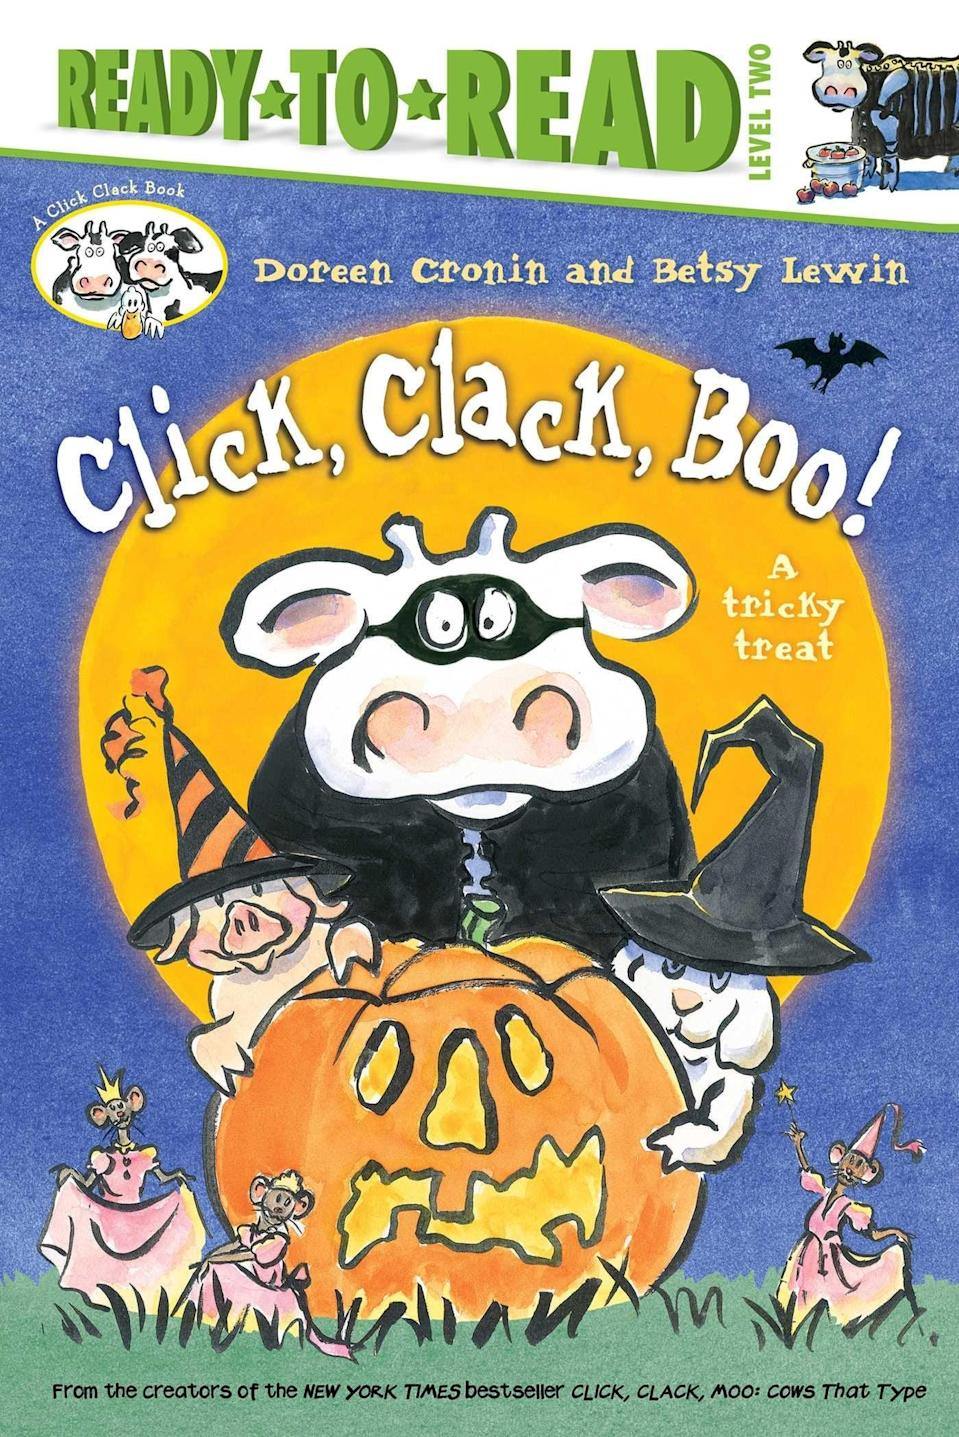 """<p>Will the barnyard animals trick-or-treat Farmer Brown? Find out in <span><strong>Click, Clack, Boo!: A Tricky Treat</strong></span> ($18), a <a class=""""link rapid-noclick-resp"""" href=""""https://www.popsugar.com/Halloween"""" rel=""""nofollow noopener"""" target=""""_blank"""" data-ylk=""""slk:Halloween"""">Halloween</a> tale from the bestselling authors of <strong>Click, Clack, Moo</strong>. Broad black lines and watercolor paintings add just the right amount of shadow and spookiness to the simple text, creating a story that is creepy enough for Halloween but won't scare little ones.</p>"""